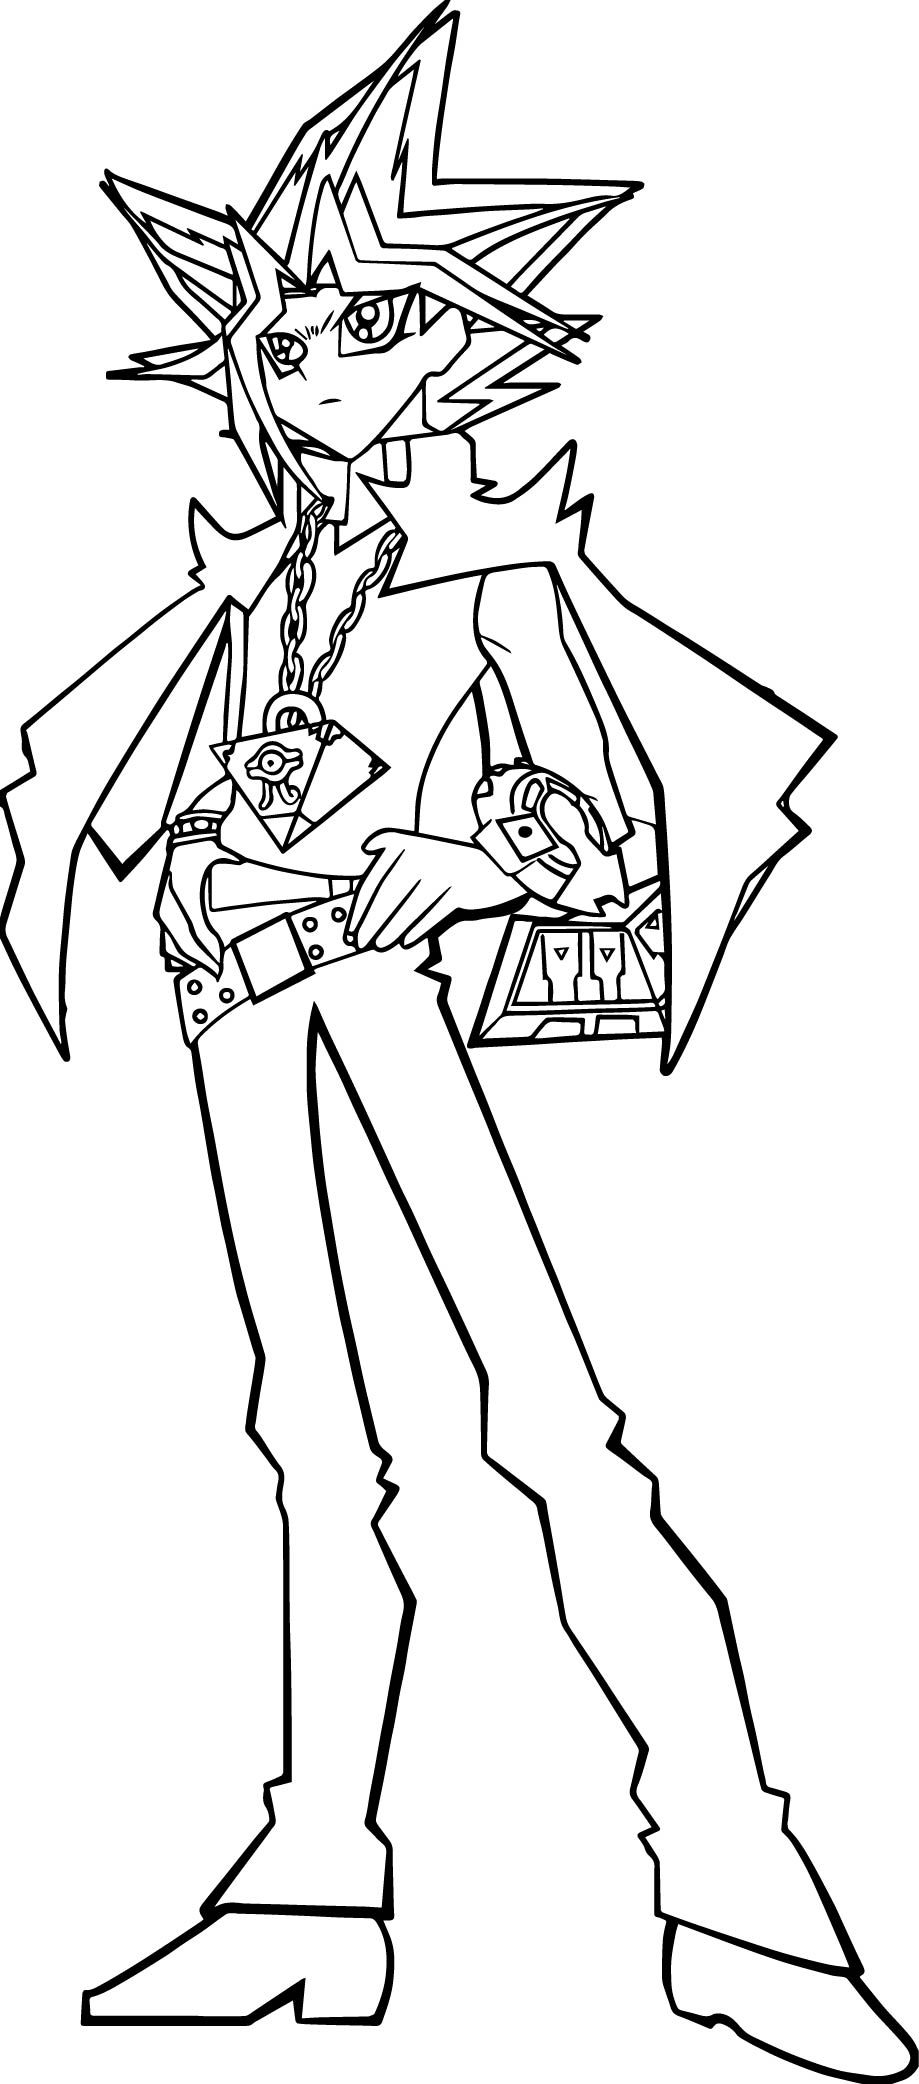 yugioh 5ds coloring pages yu gi oh 5ds coloring pages learny kids 5ds coloring pages yugioh